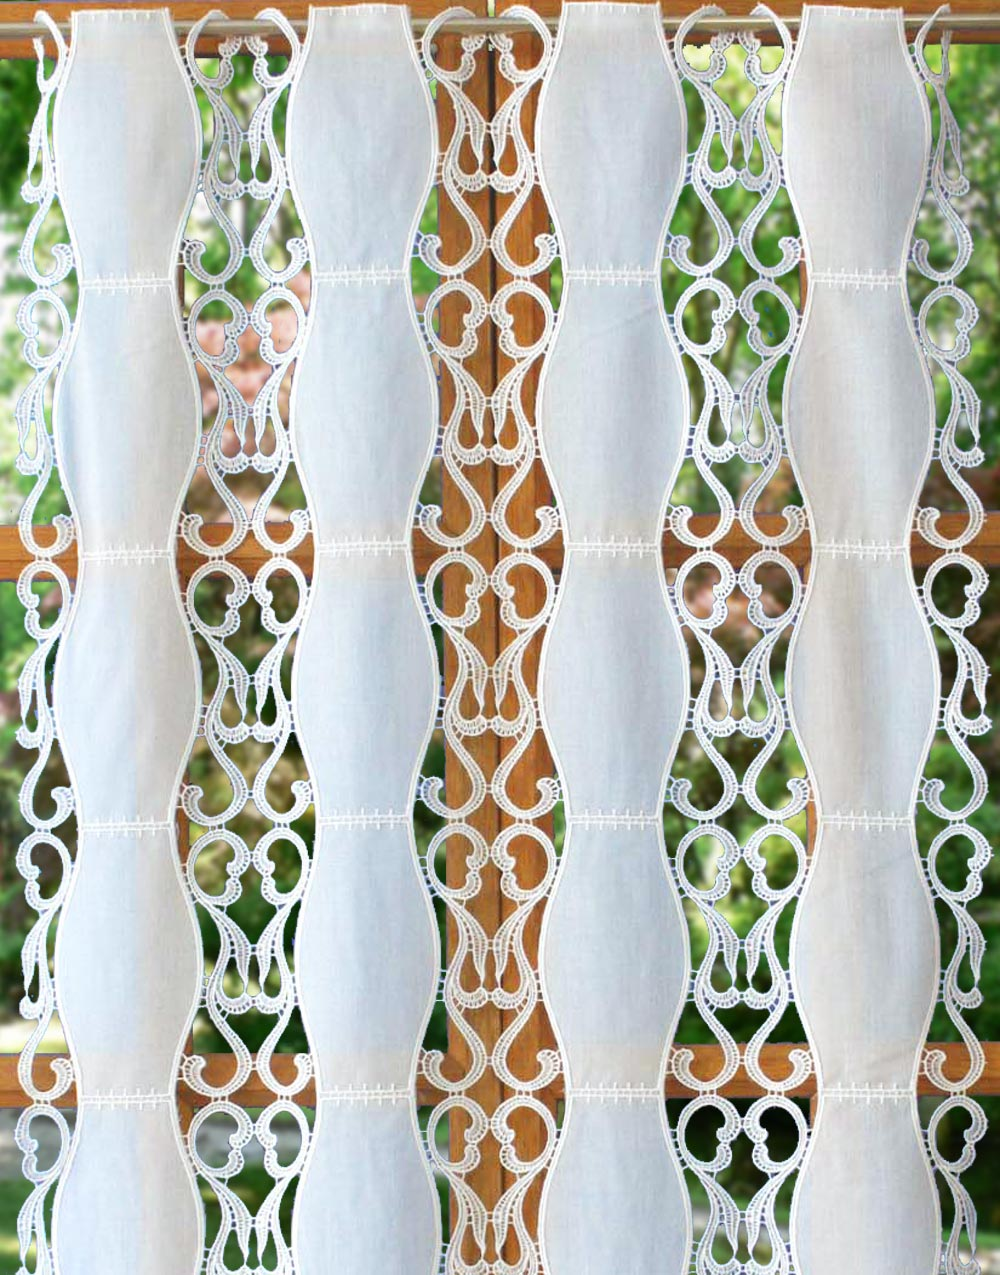 Harmonie lace curtain in 30 inches height